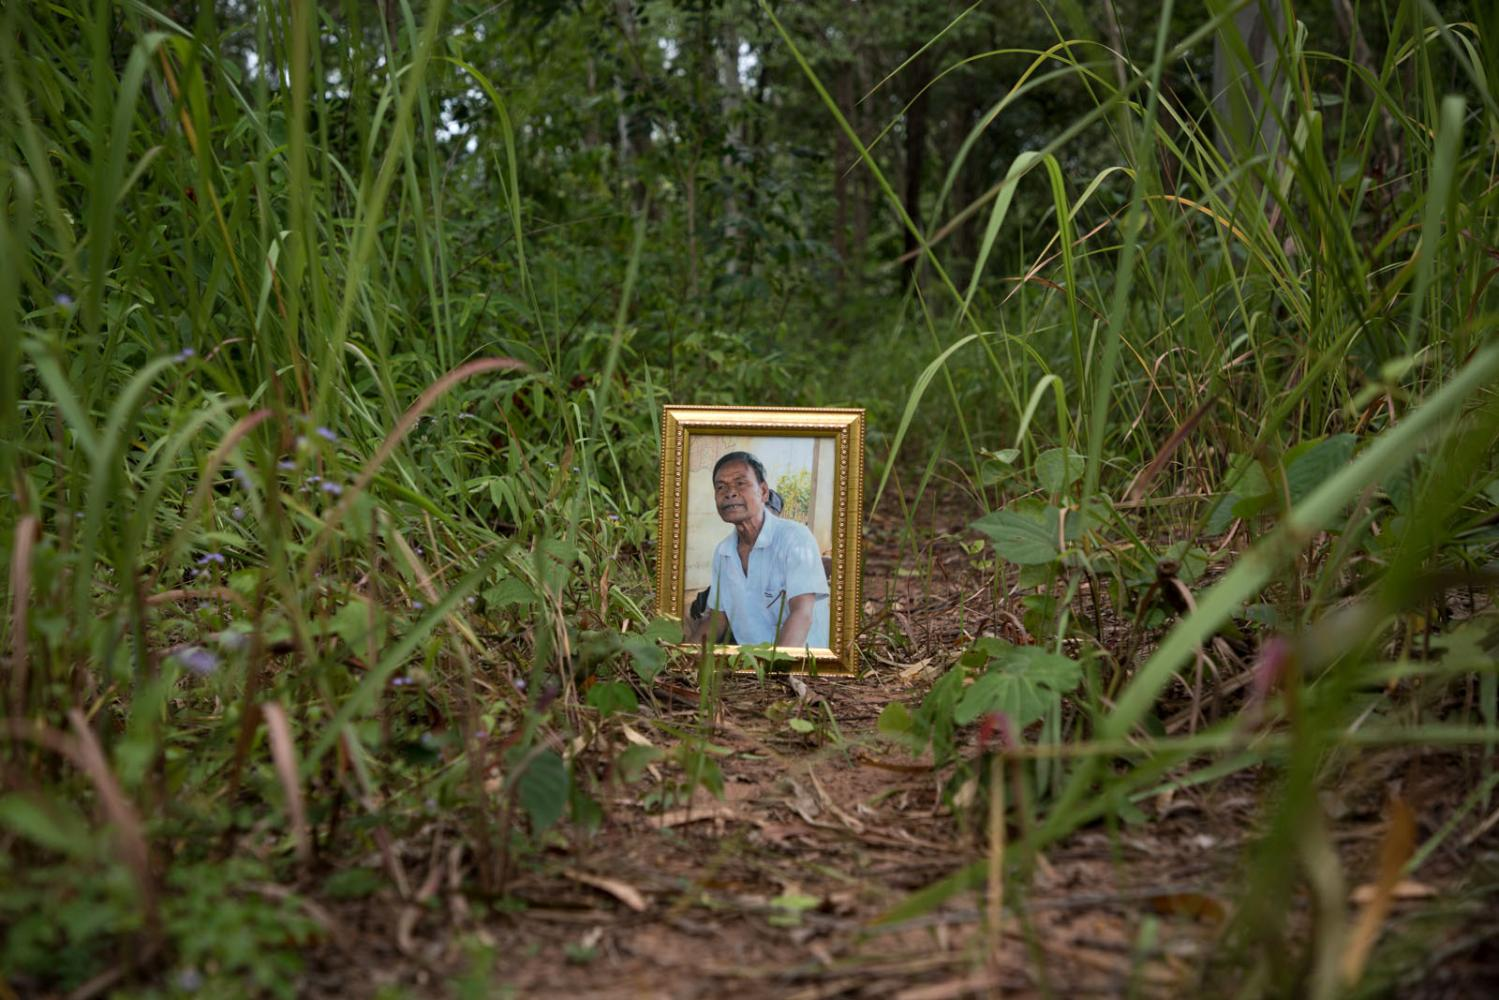 Den Khamlae, a land rights activist from Khon San District in Chaiyaphum Province and a prominent member of the Northeastern Land Reform Network became a victim of enforced disappearance on 16    April 2016 as he left his home at Kok Yaaw village to find mushrooms in the forest. He was part of a community that was enduring a fierce land dispute with the authorities who wanted to relocate the village as part of the controversial forest reclamation policy act.